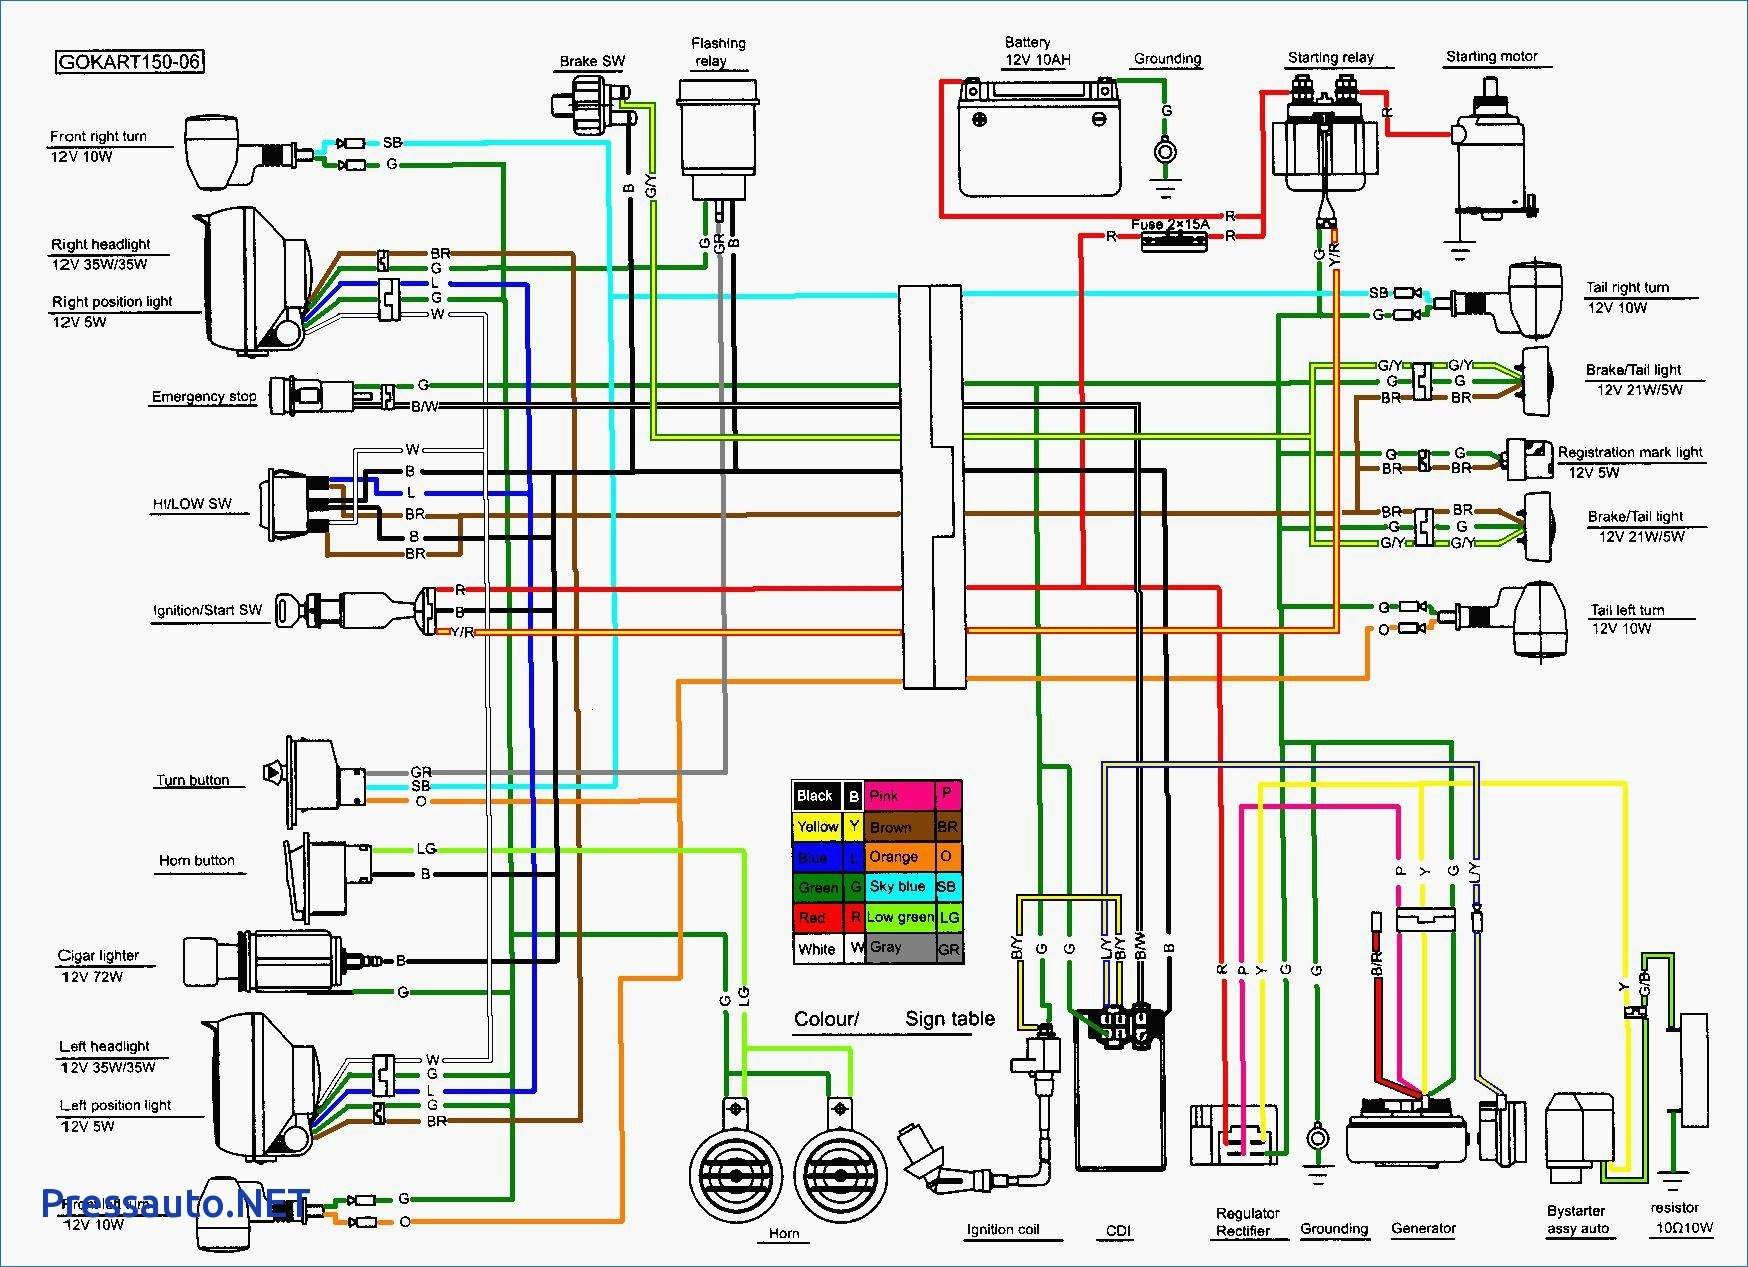 Tao 110 Atv Wiring - Wiring Diagram Detailed - Tao Tao 110 Atv Wiring Diagram